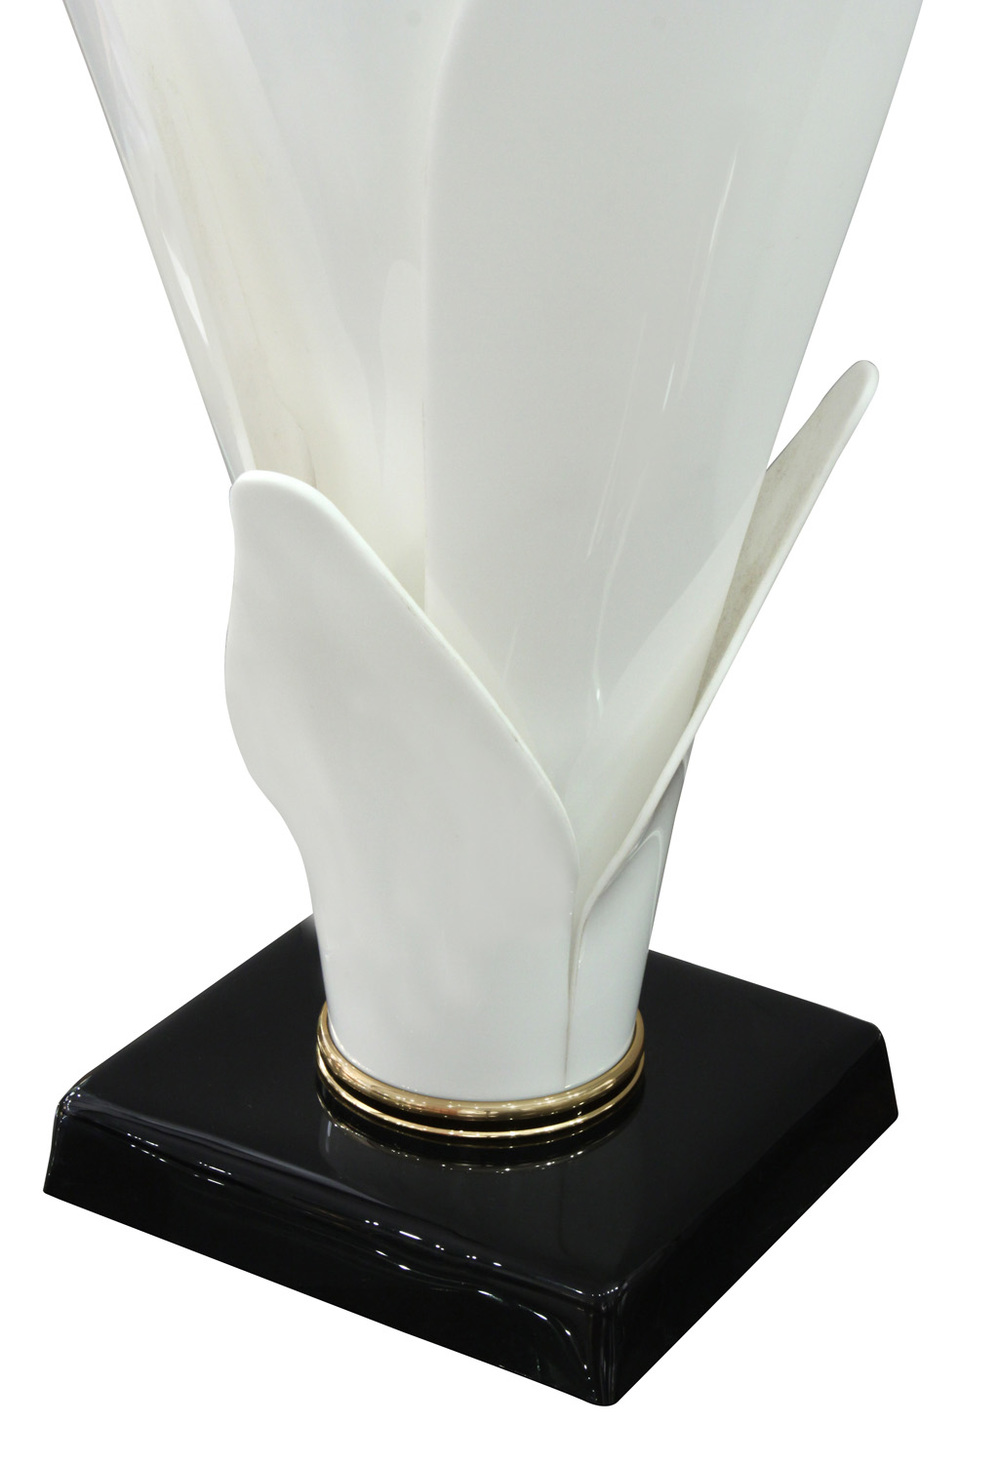 Rougier 30 white petals flower tablelamp220 detail3 hires.jpg